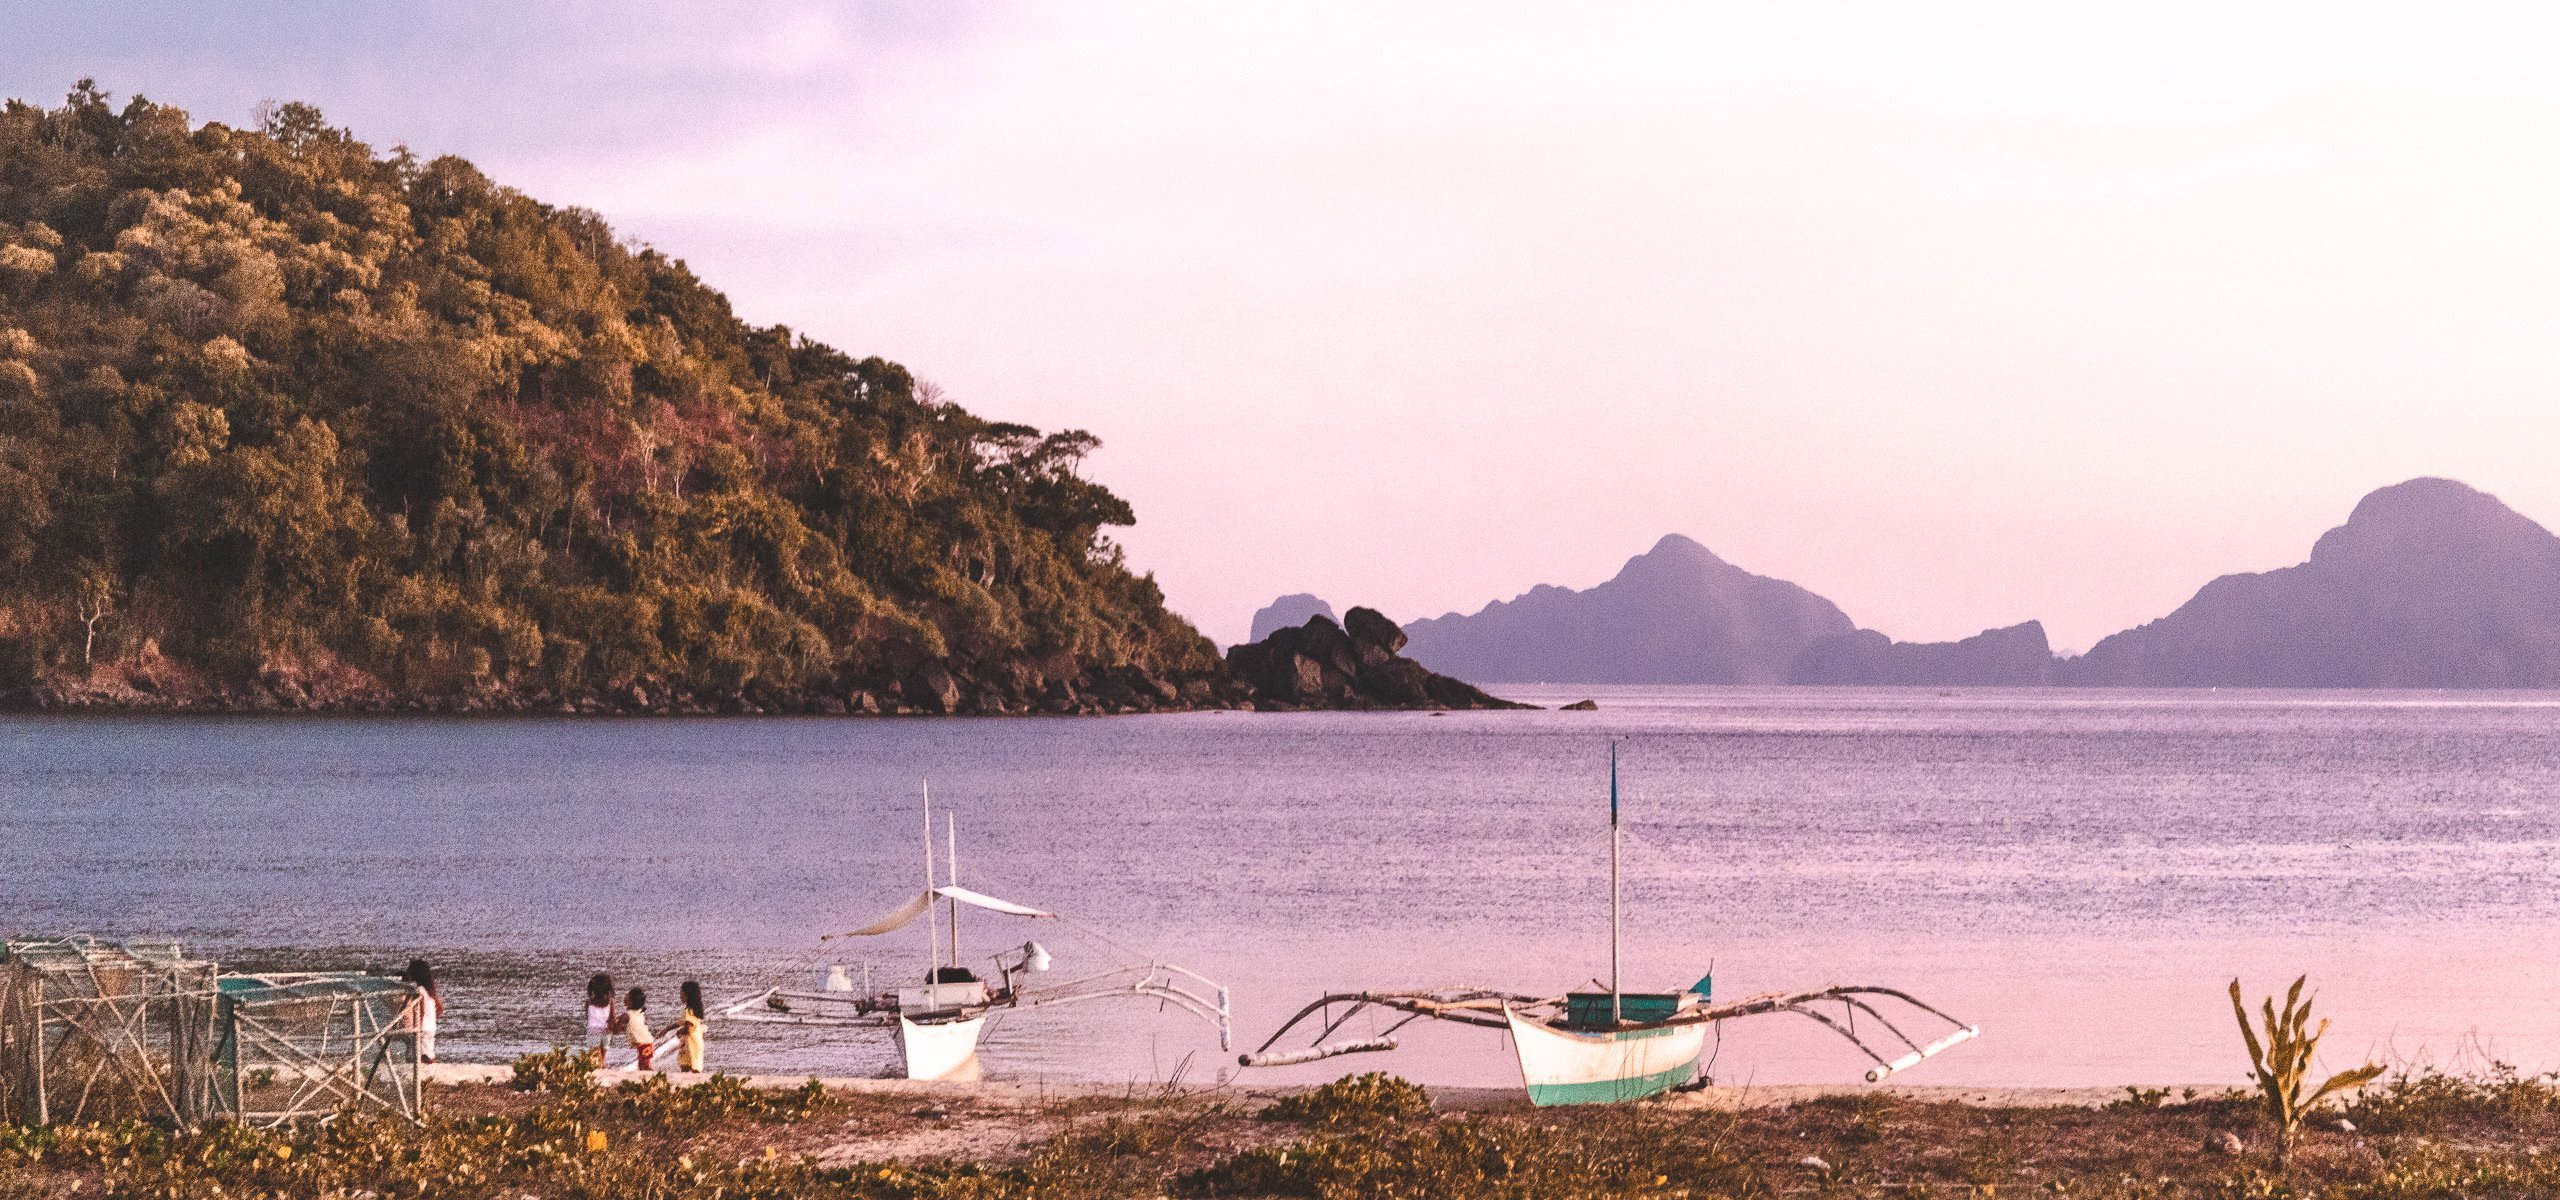 Philippines Travel Budget: How Much Do I Need for 10 Days?